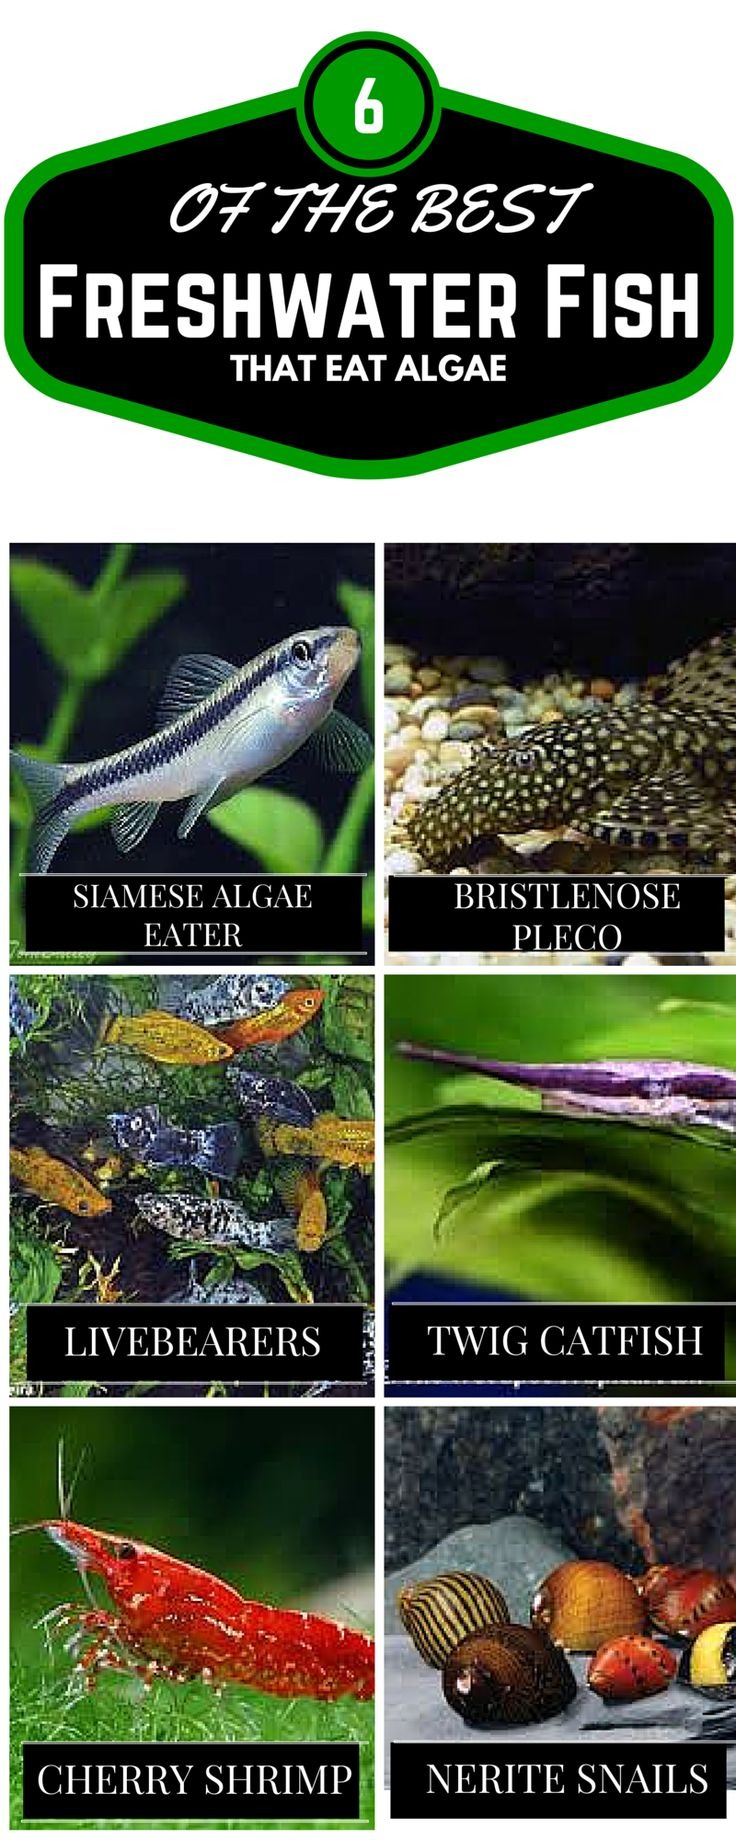 Freshwater fish aquarium accessories - 37 Easy Ways To Control Algae And Get Crystal Clear Aquarium Water